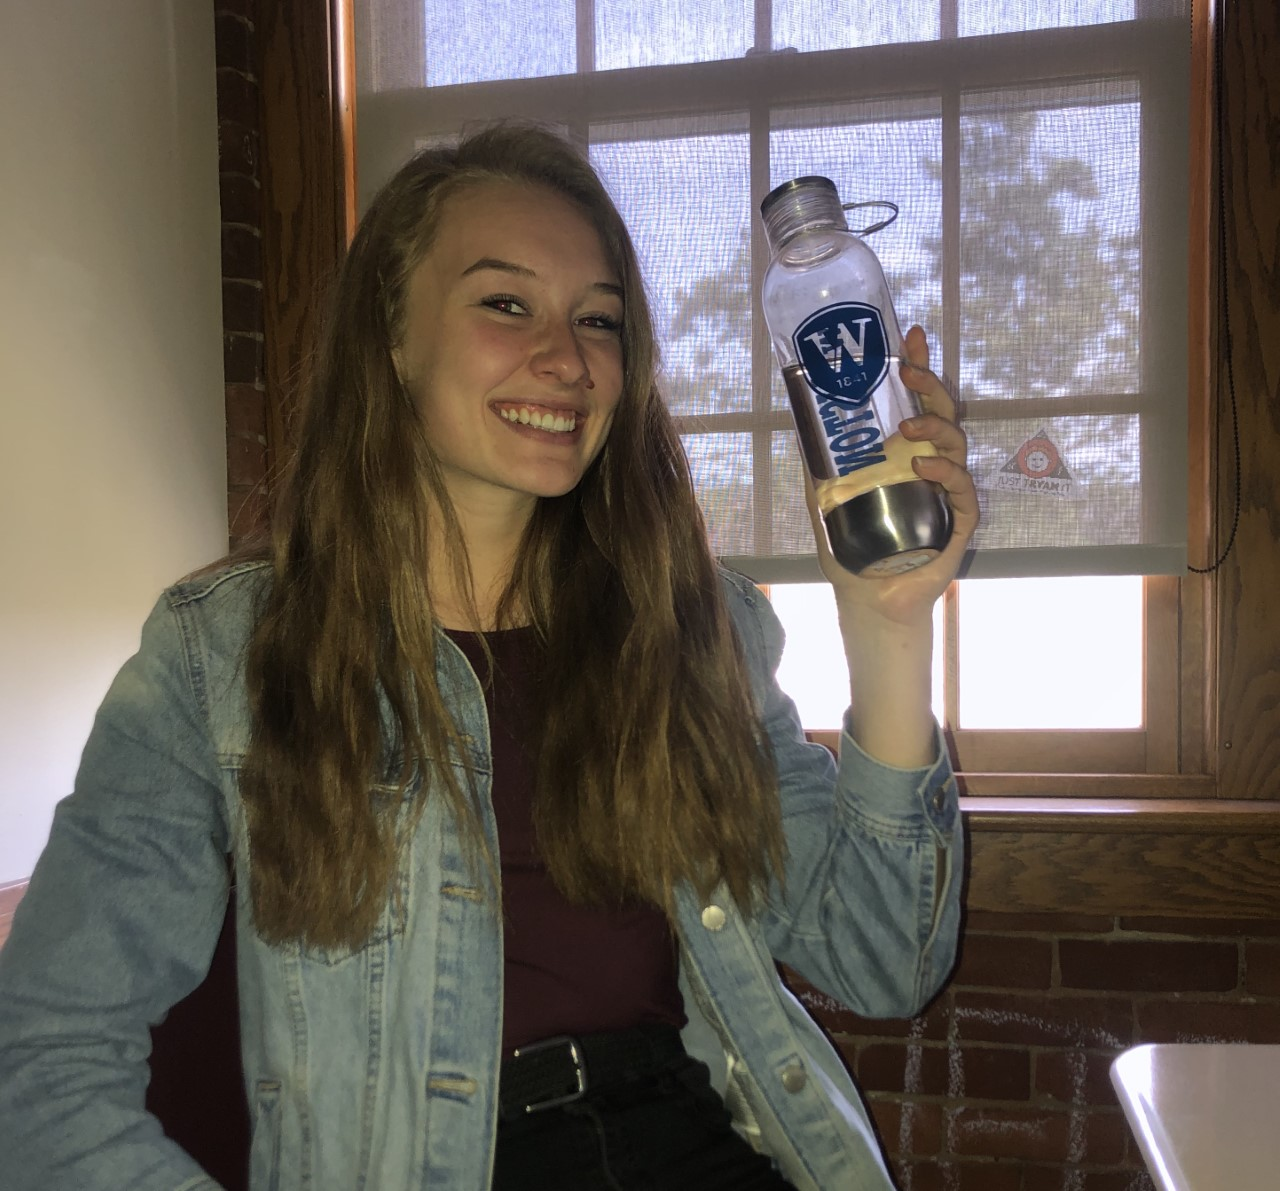 Gates MacPherson '19 with her reusable water bottle. Credit: Ellie Wolfe '19